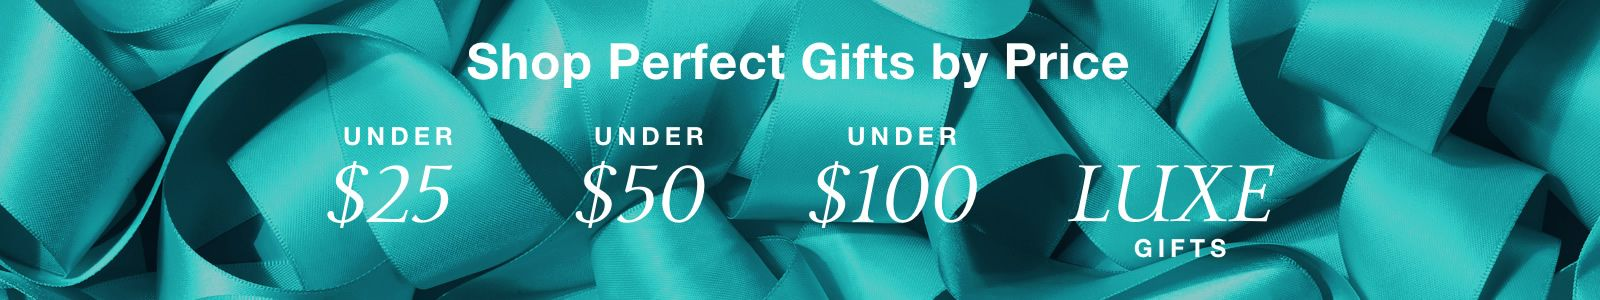 Shop Perfect Gifts by Price, Under $ 25, Under $ 50, Under$ 100, Luxe Gifts